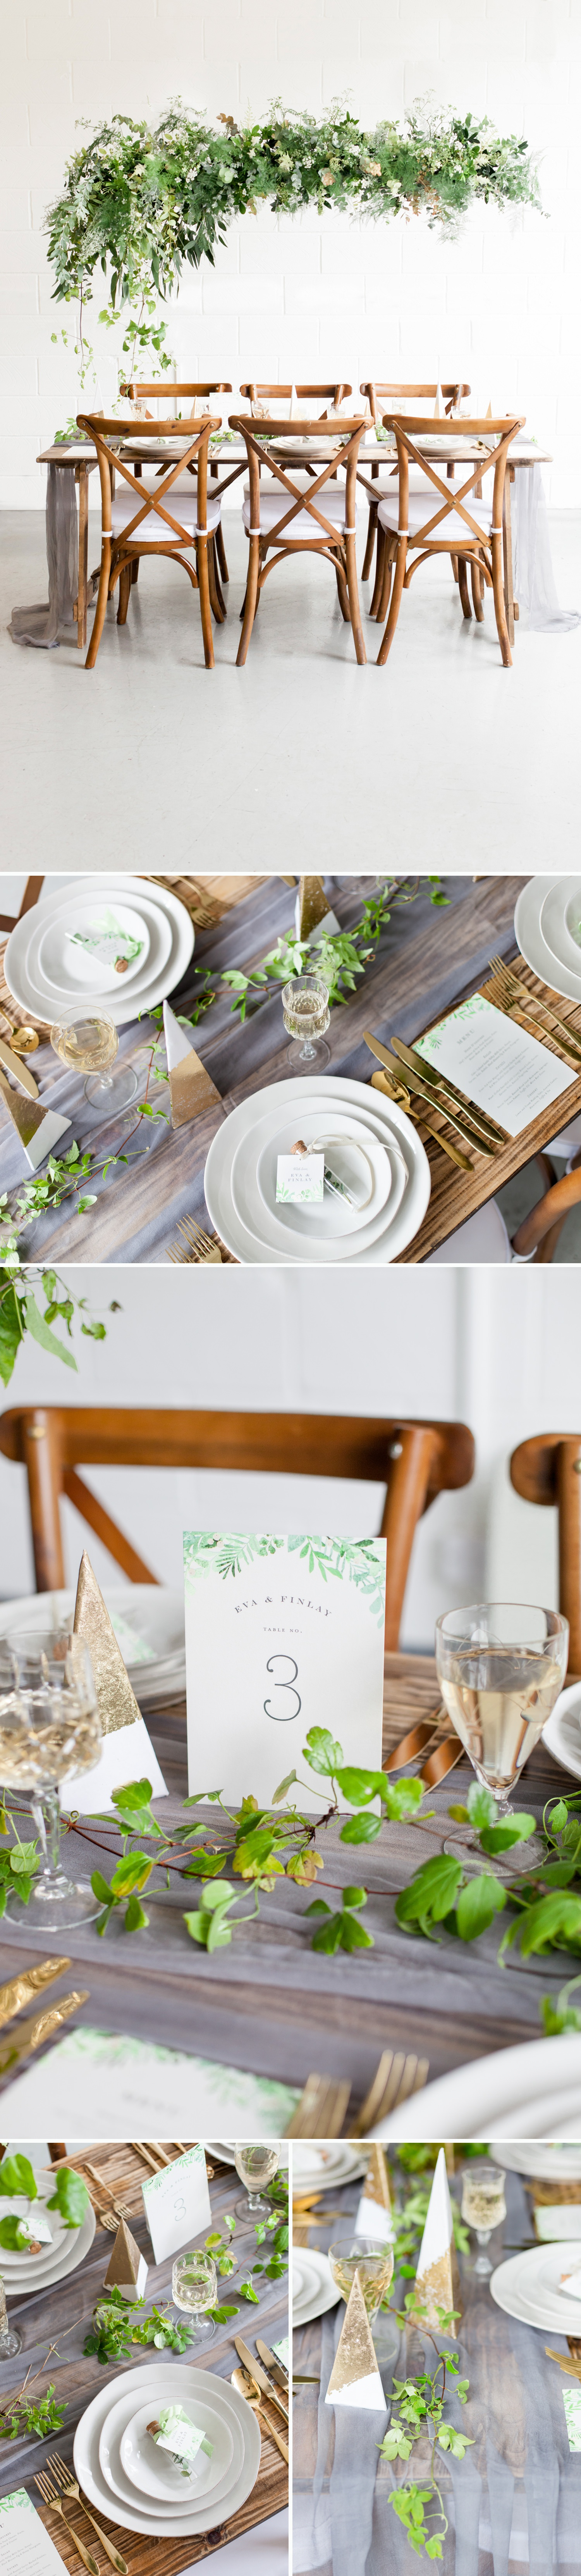 Industrial Chic Botanical Wedding 10 - a tablescape inspired by botanical wedding stationery